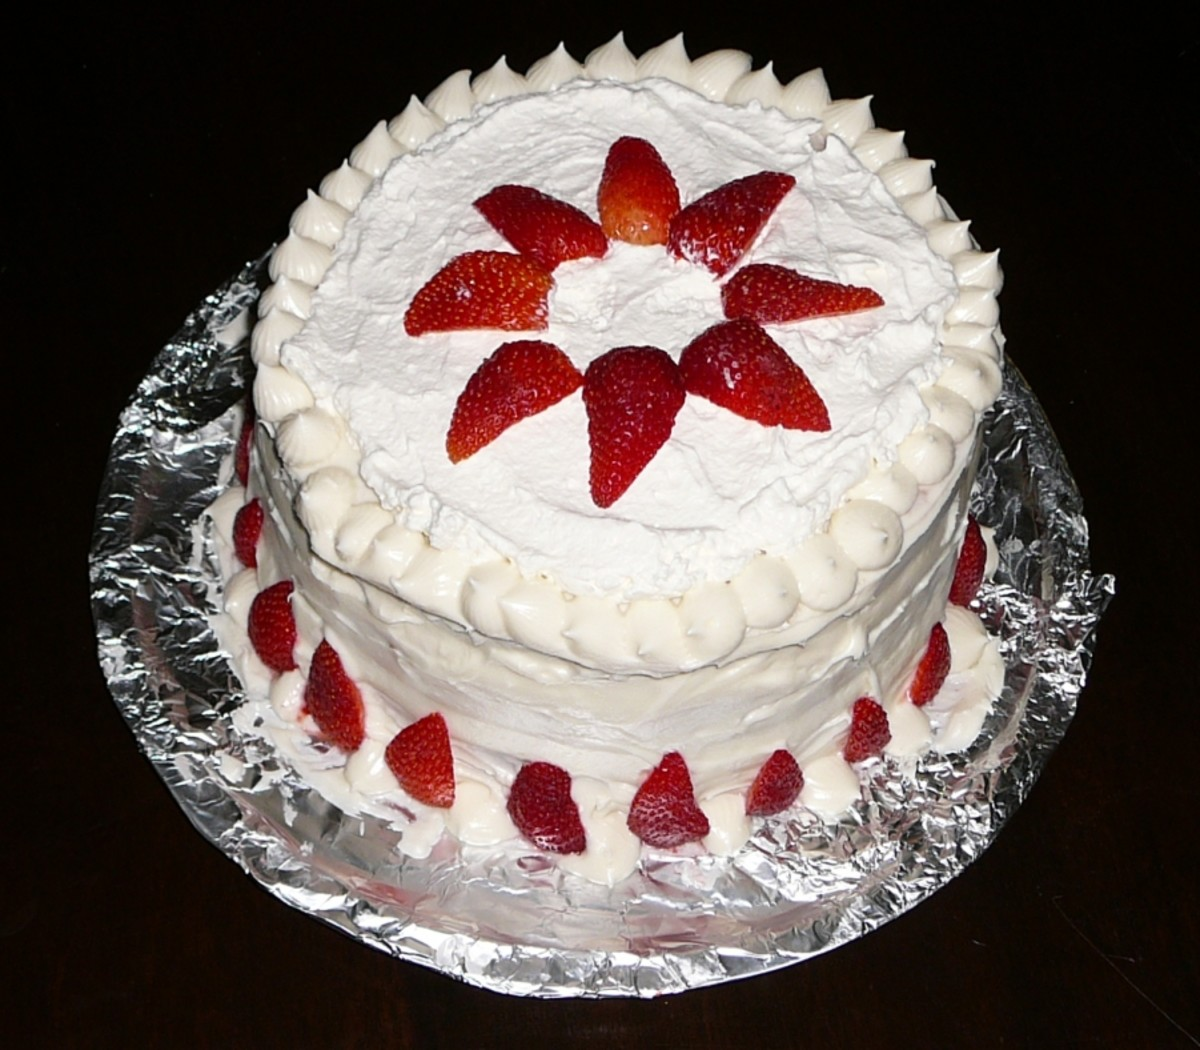 fresh-strawberry-cake-with-cream-cheese-frosting